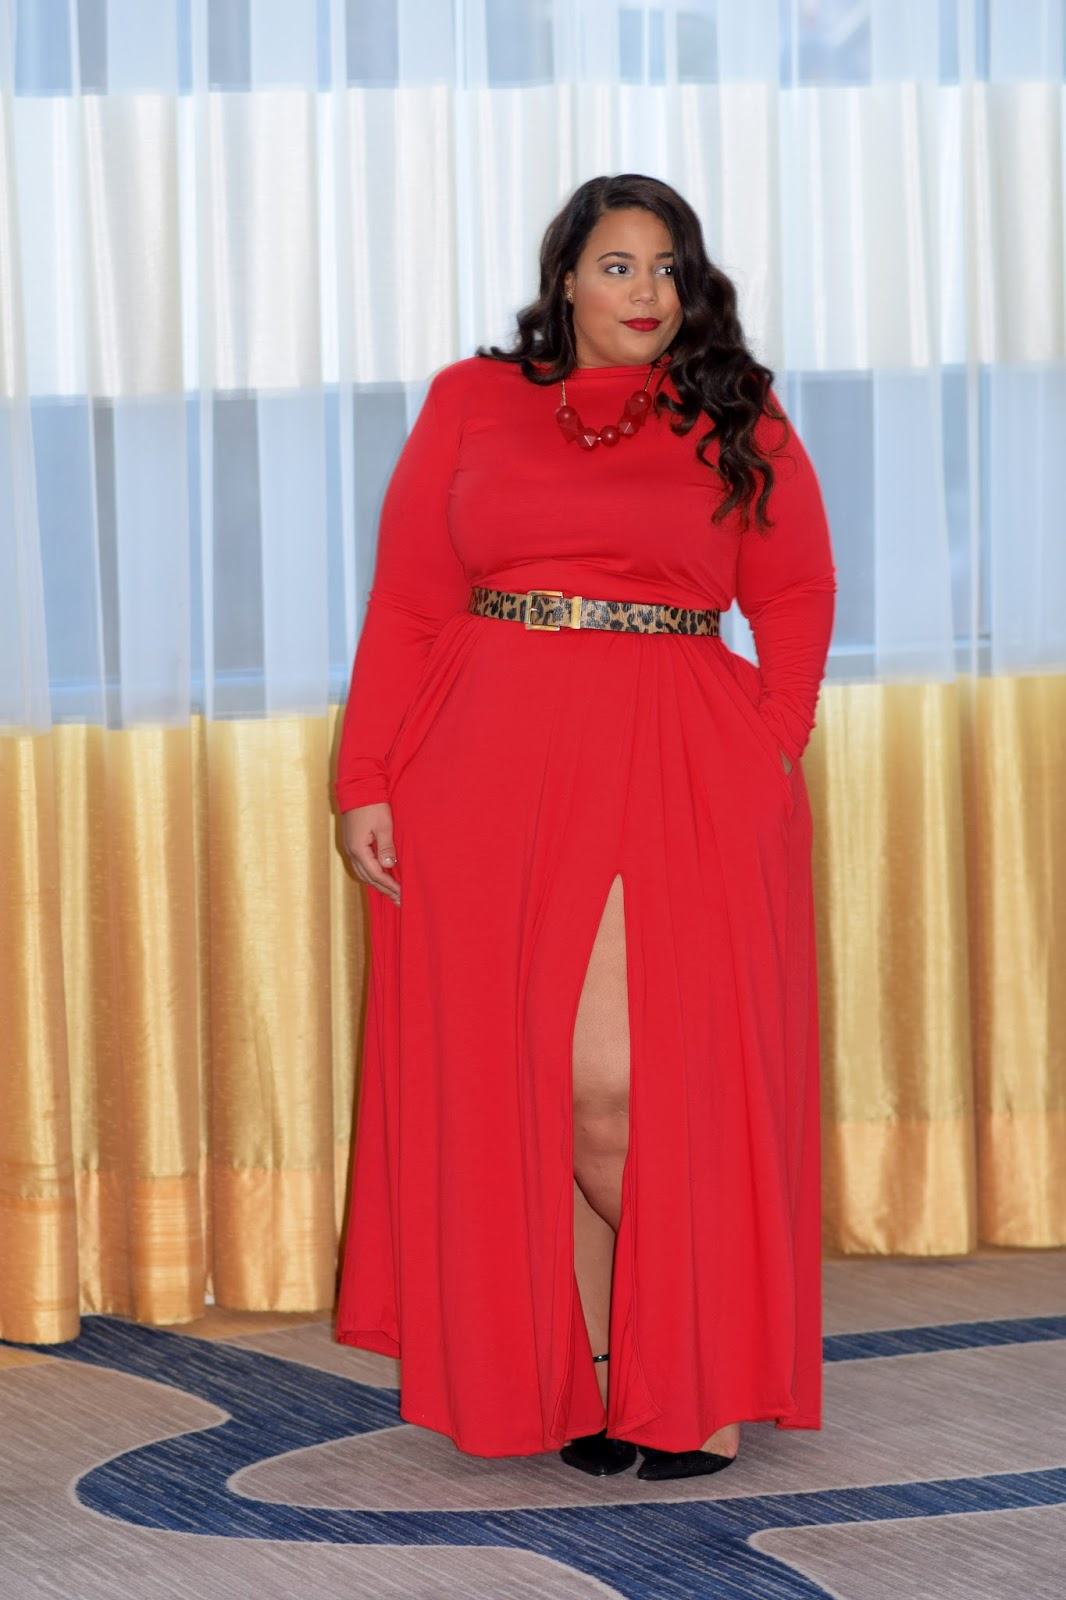 Plus Size Holiday Outfit, plus size red dress